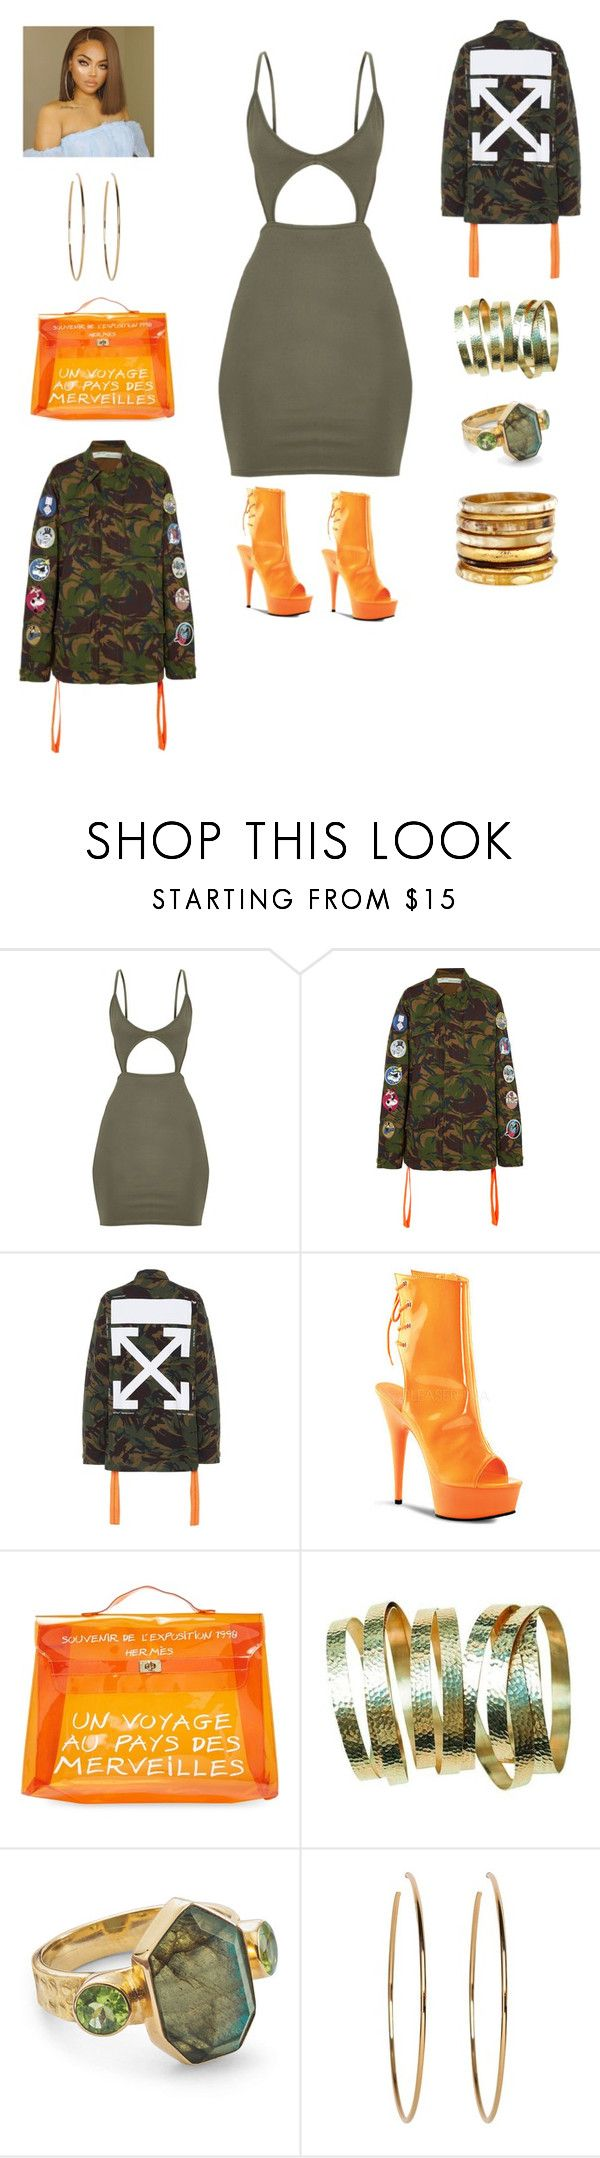 """Untitled #925"" by ericap61720 ❤ liked on Polyvore featuring Off-White, Pleaser, Hermès, Kenneth Jay Lane and Ashley Pittman"